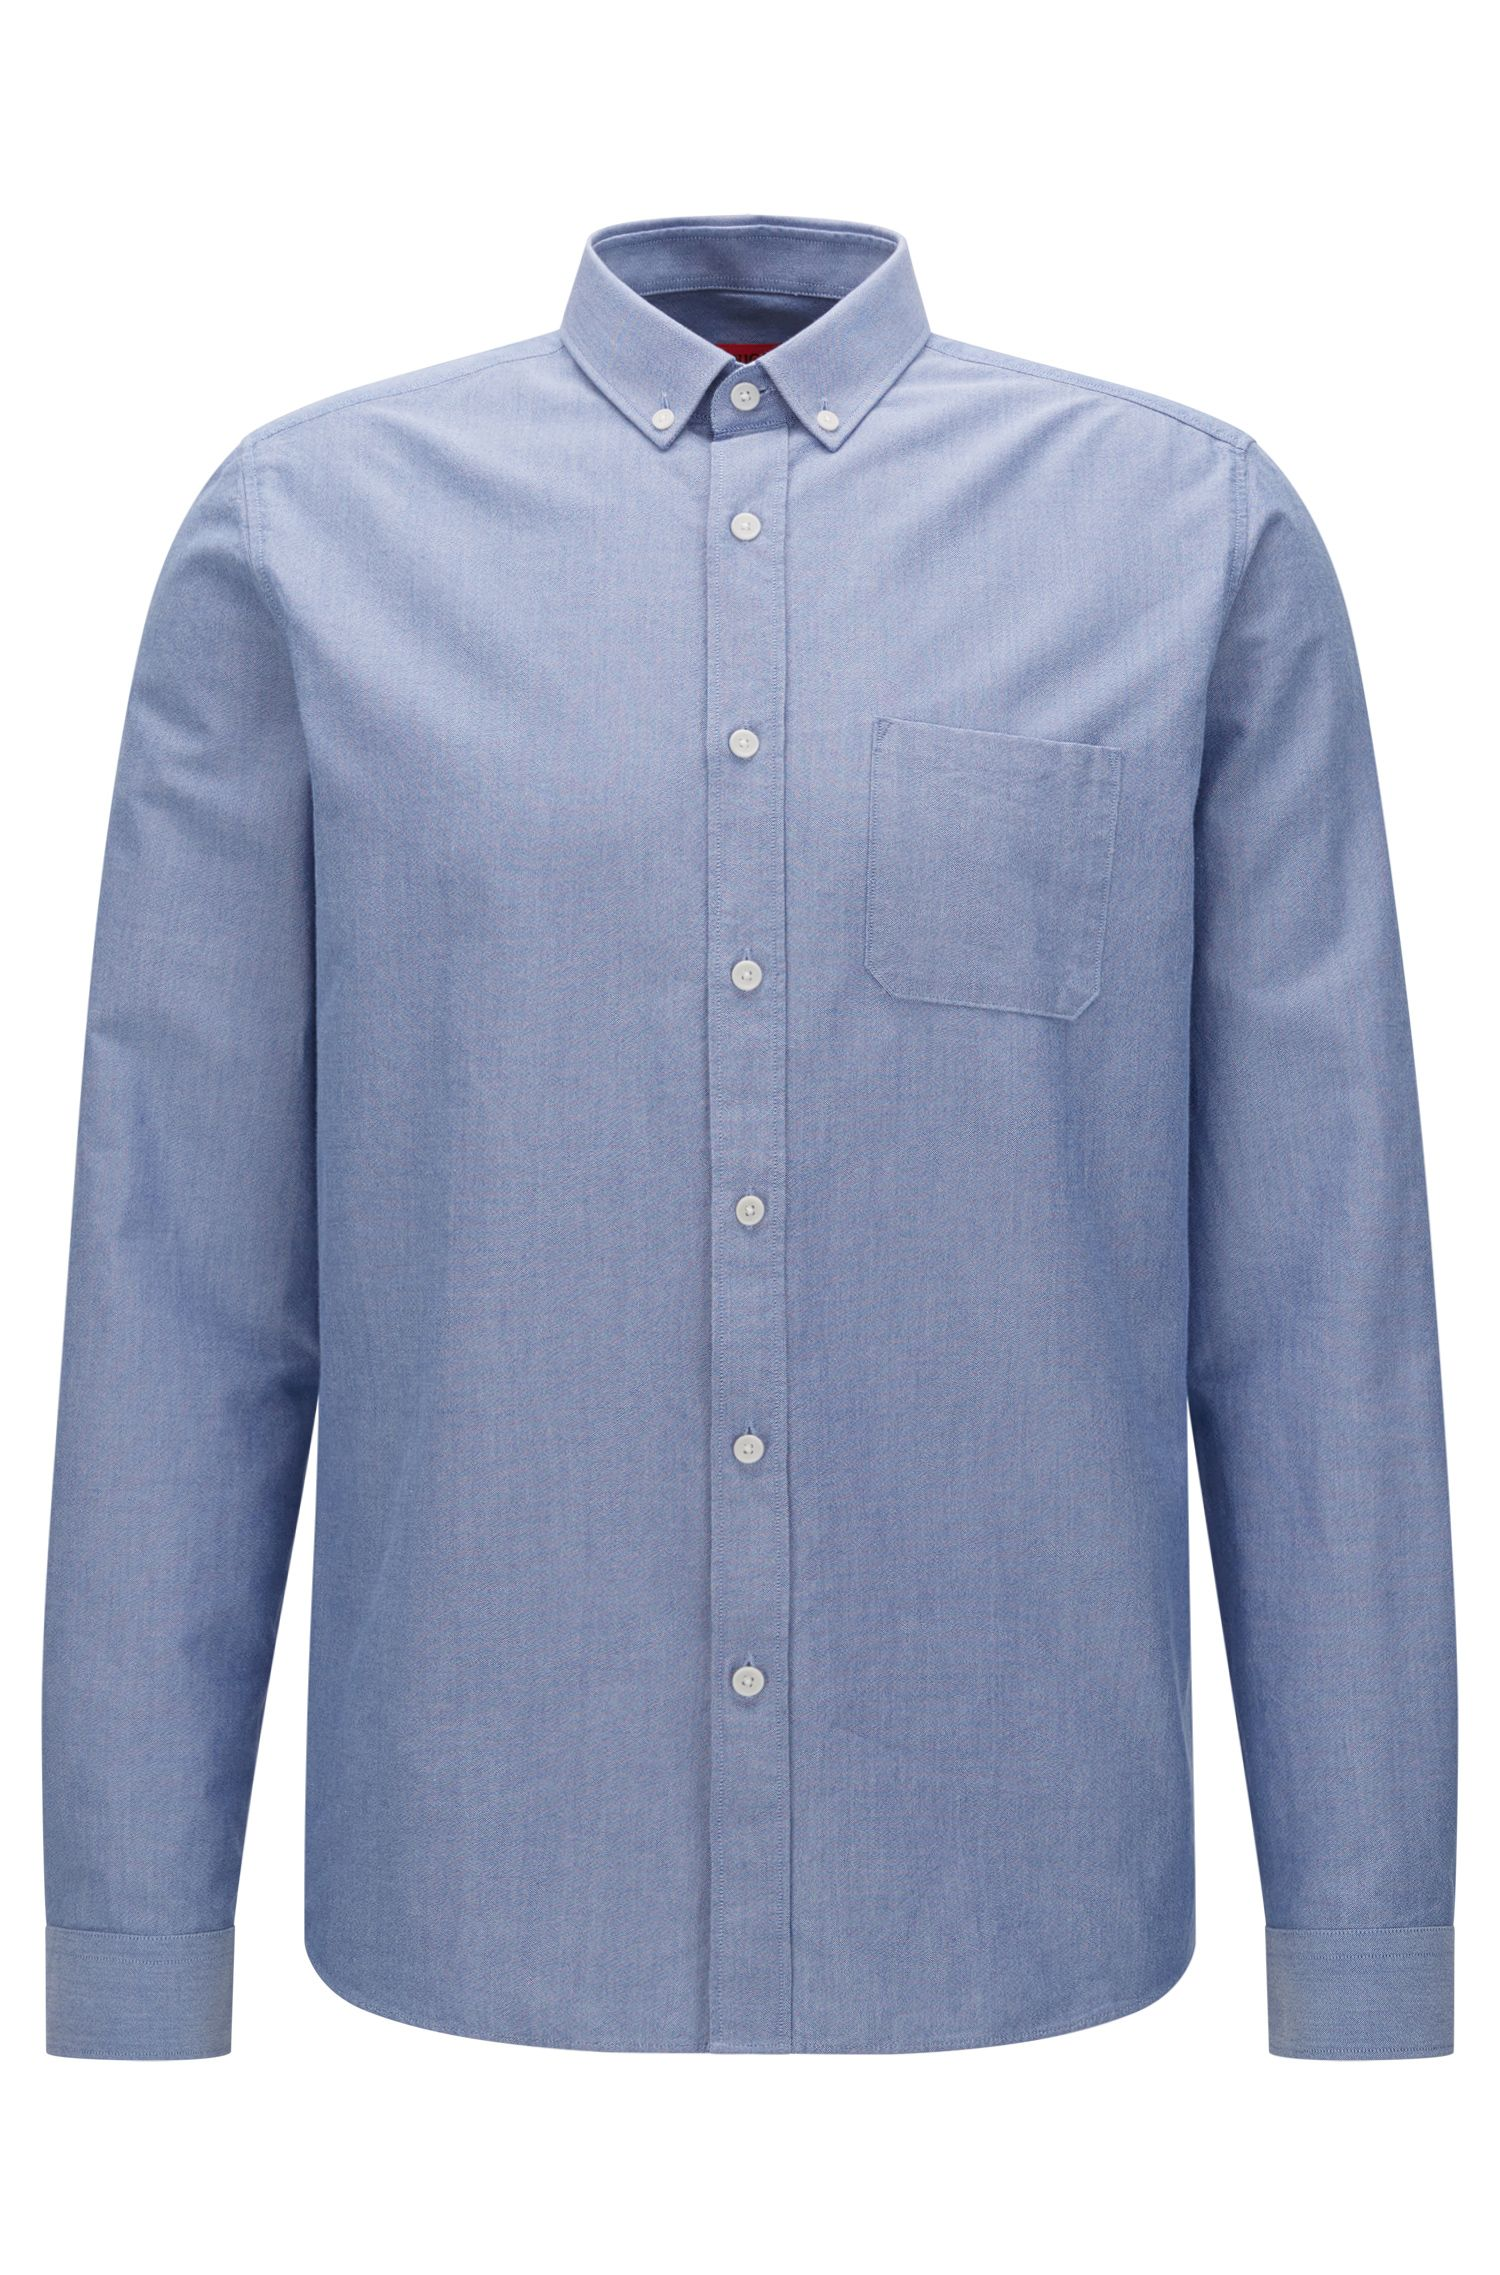 Cotton Button Down Shirt, Relaxed Fit | Emingway